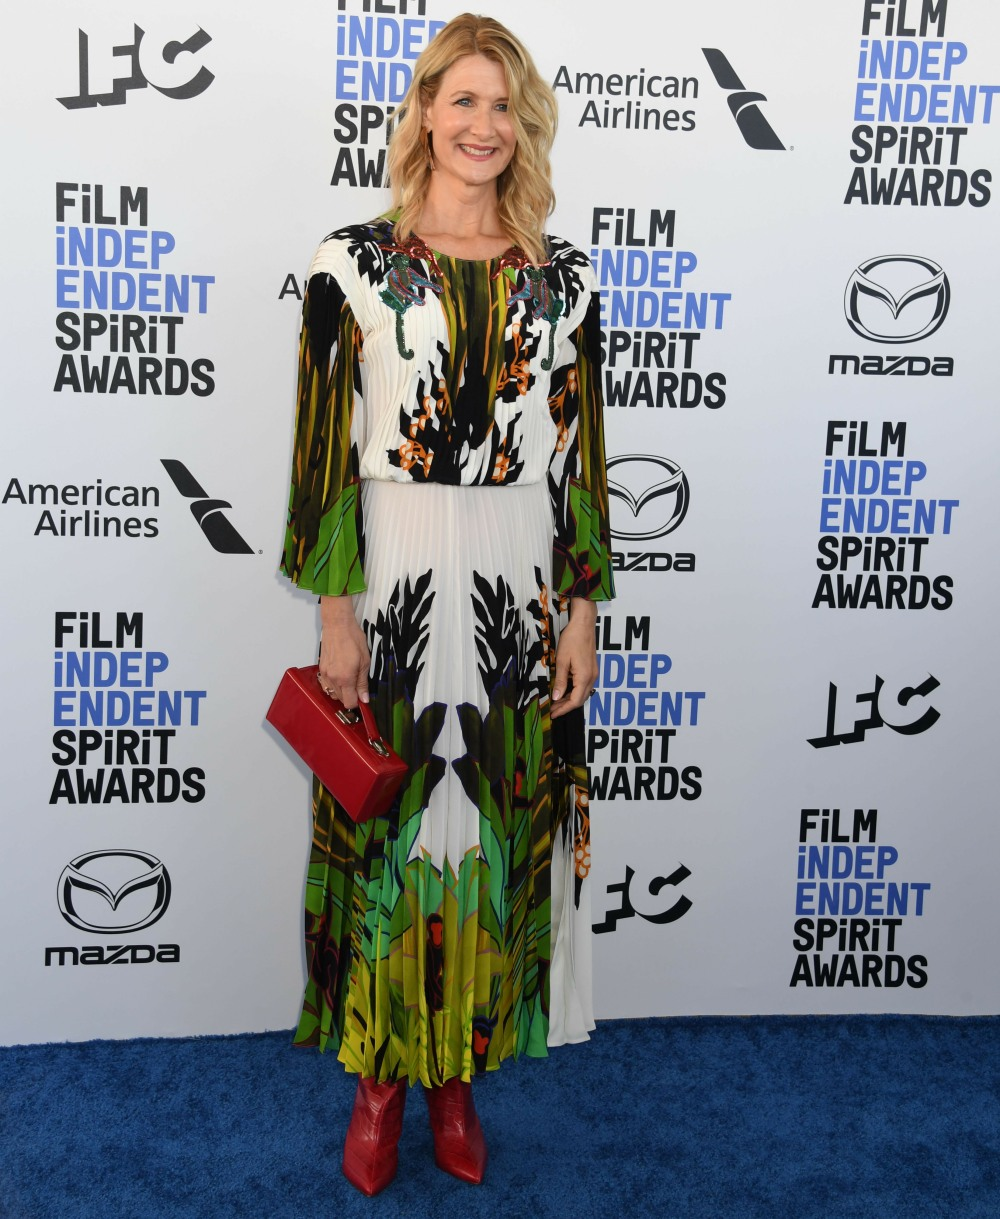 Laura Dern arrives at the 2020 Film Independent Spirit Awards, held on the beach in Santa Monica, Ca...